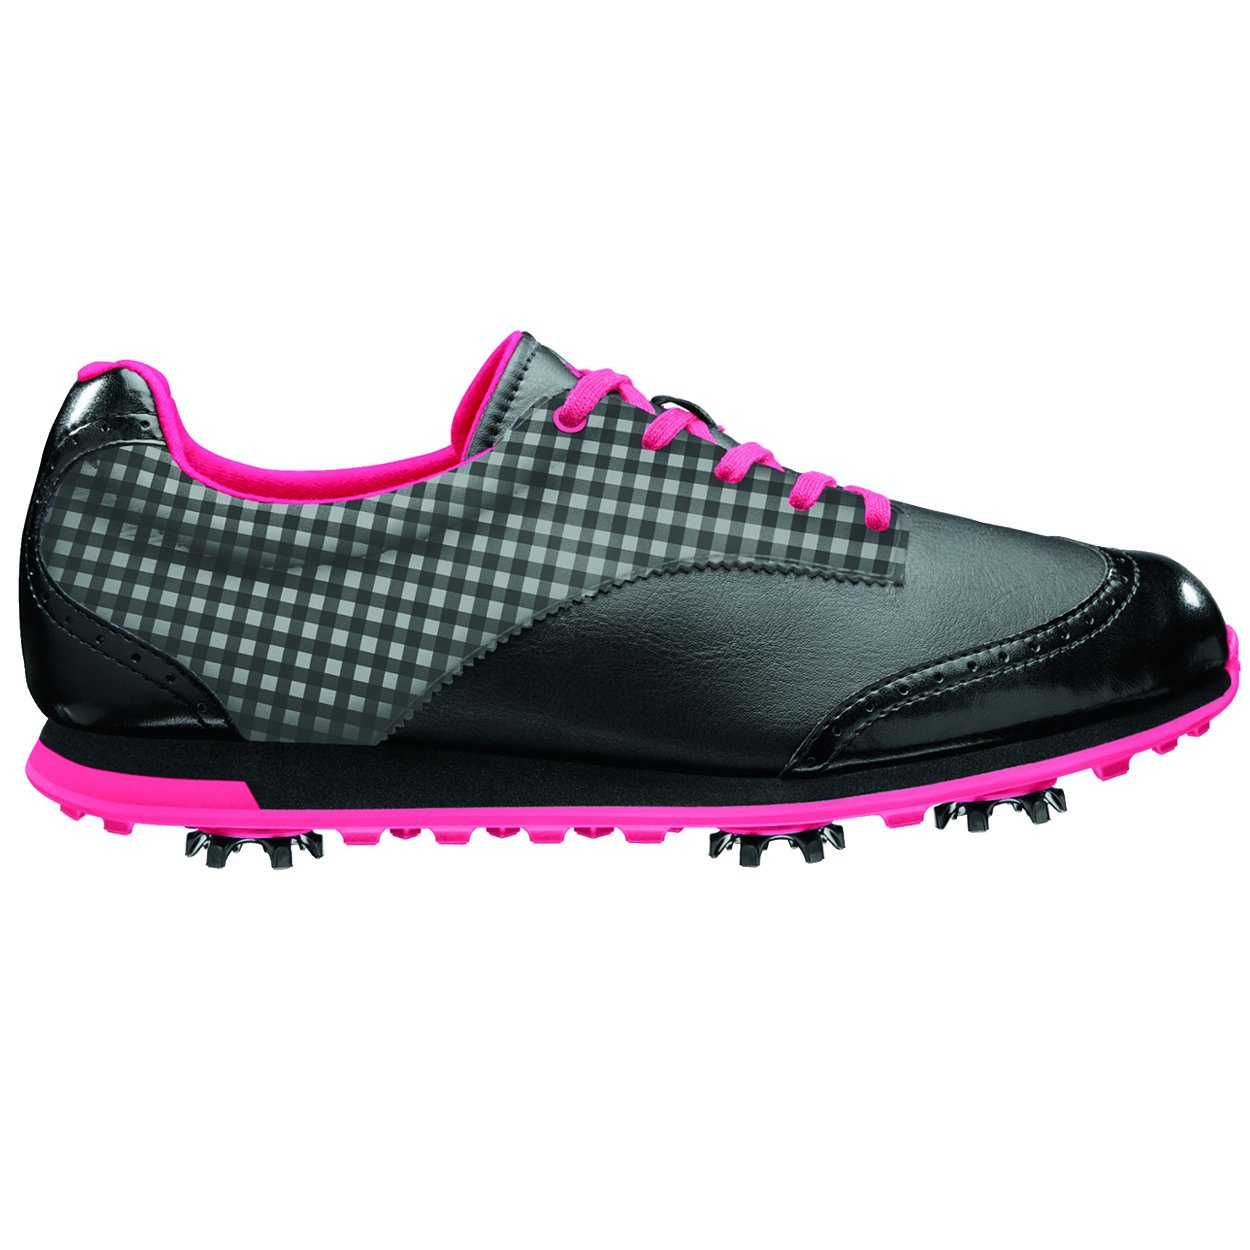 adidas Women's Driver Grace Golf Shoe,Black/Black/Fresh Pink,10 M US